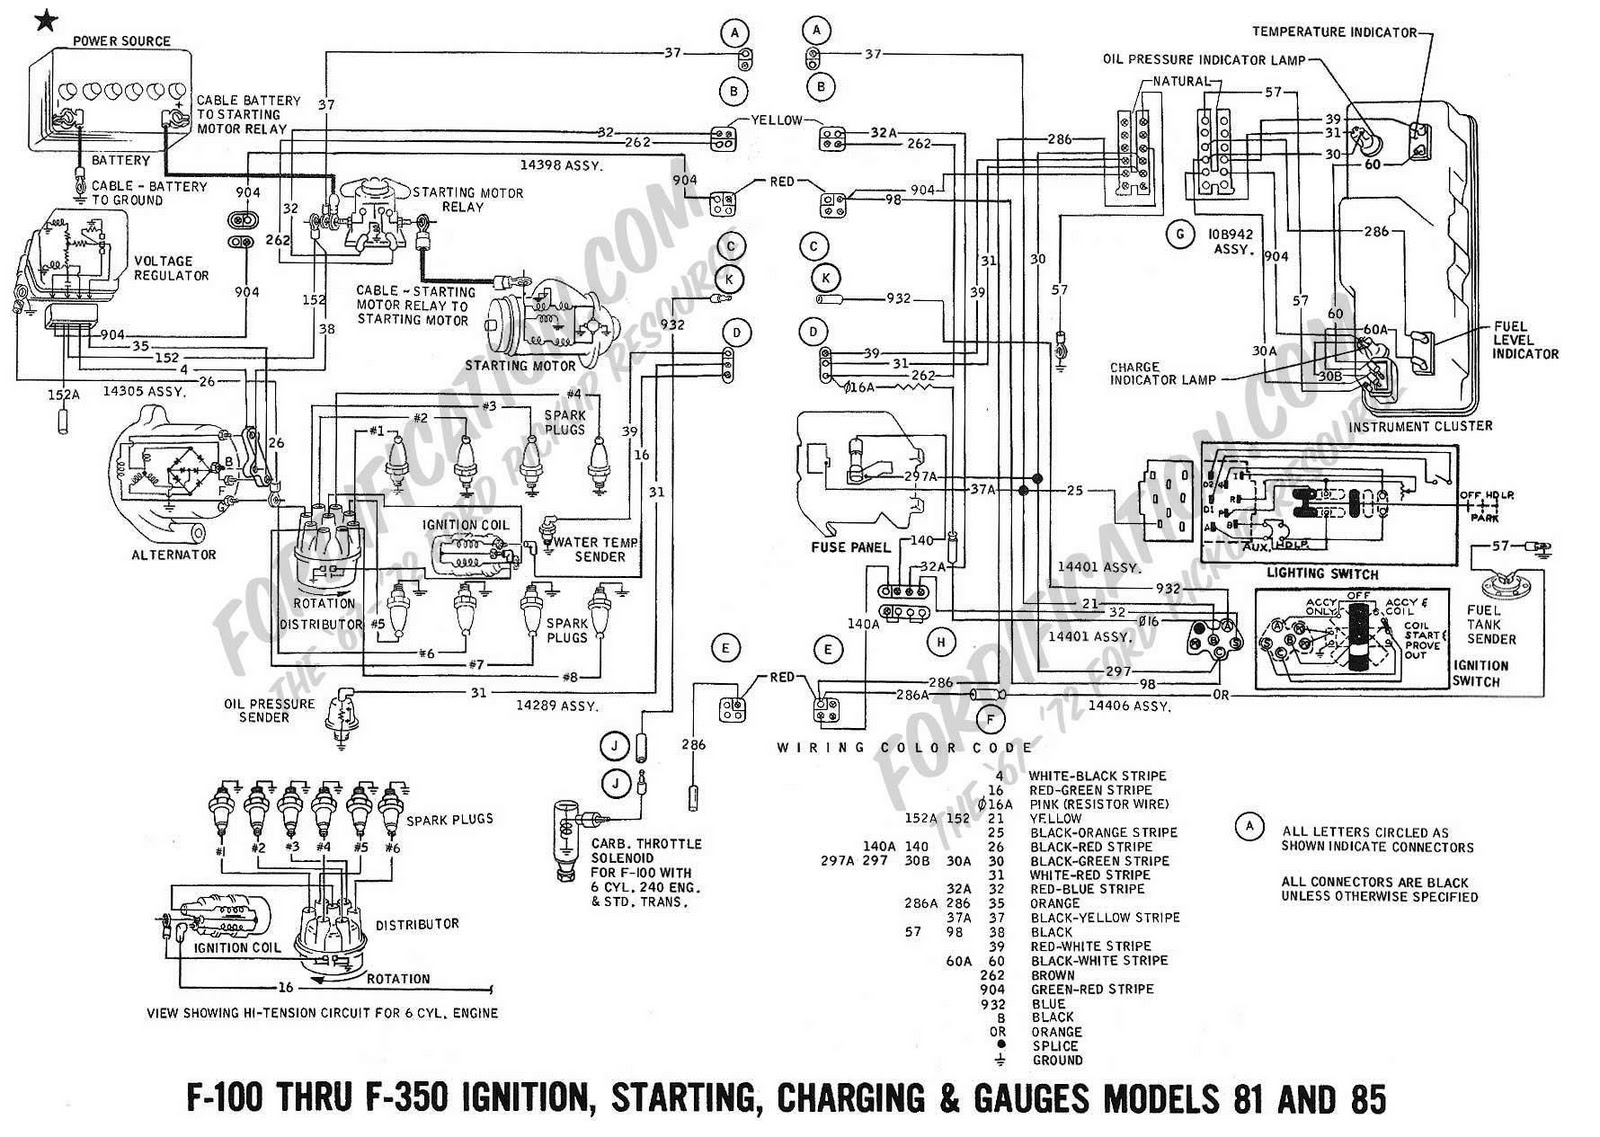 medium resolution of ford f250 neutral safety switch wiring diagram z3 wiring library1966 ford neutral safety switch wiring library